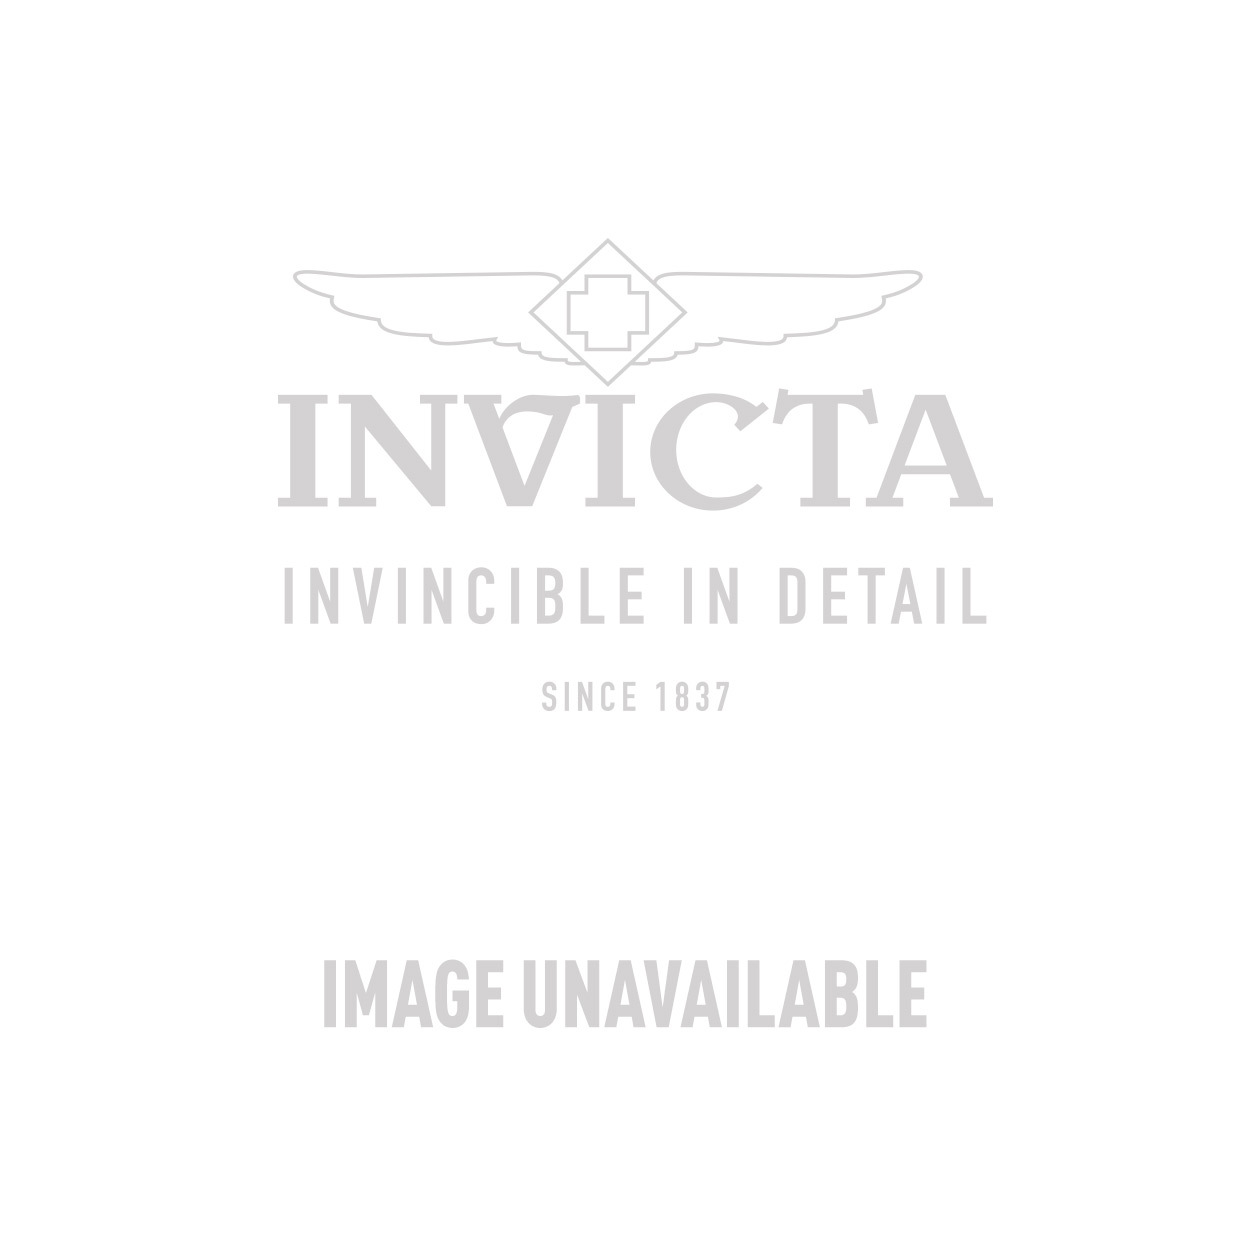 Invicta Reserve Swiss Made Quartz Watch - Rose Gold case with Rose Gold tone Stainless Steel band - Model 13720